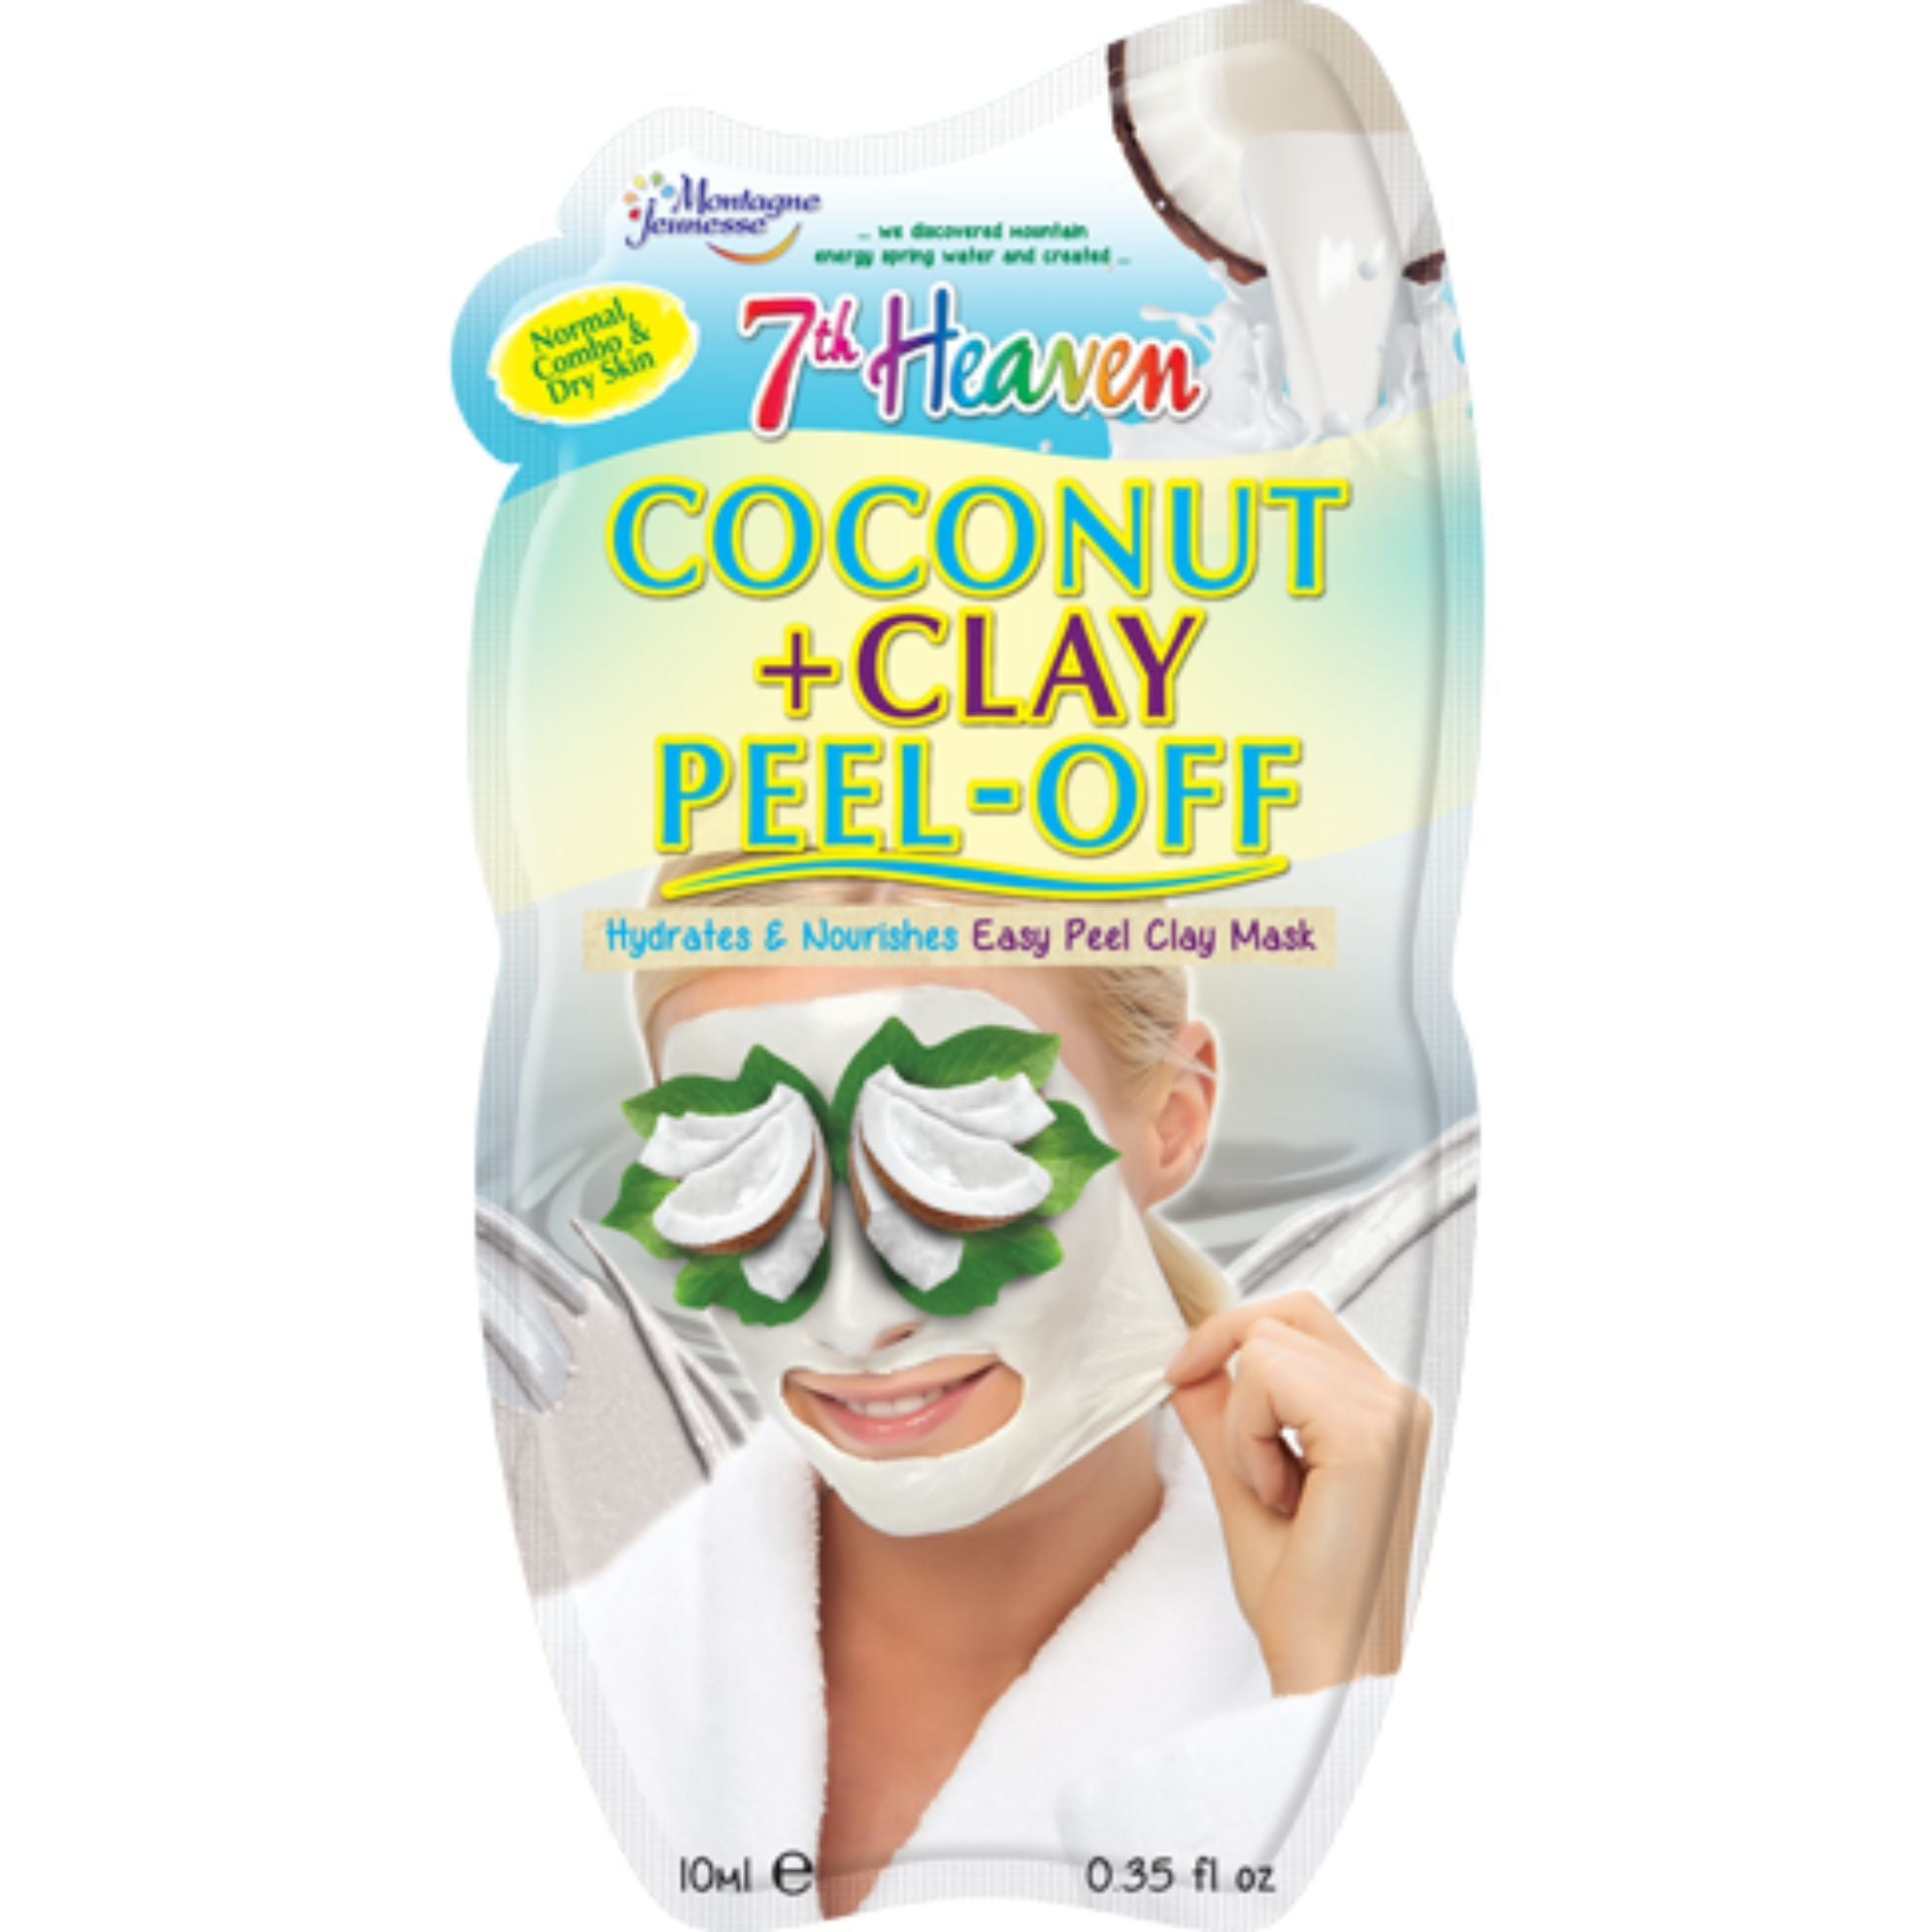 Coconut & Clay Peel-Off Mask